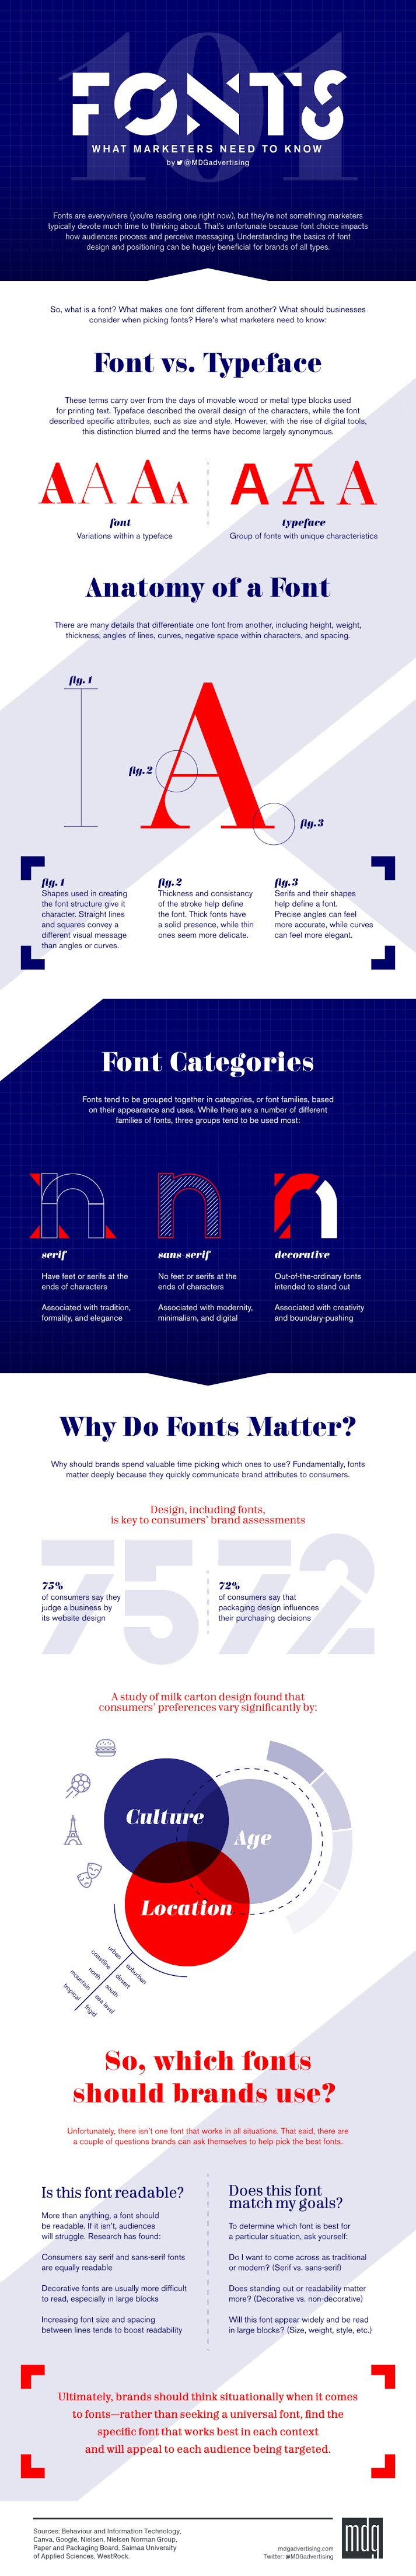 Fonts: What Marketers Need to Know